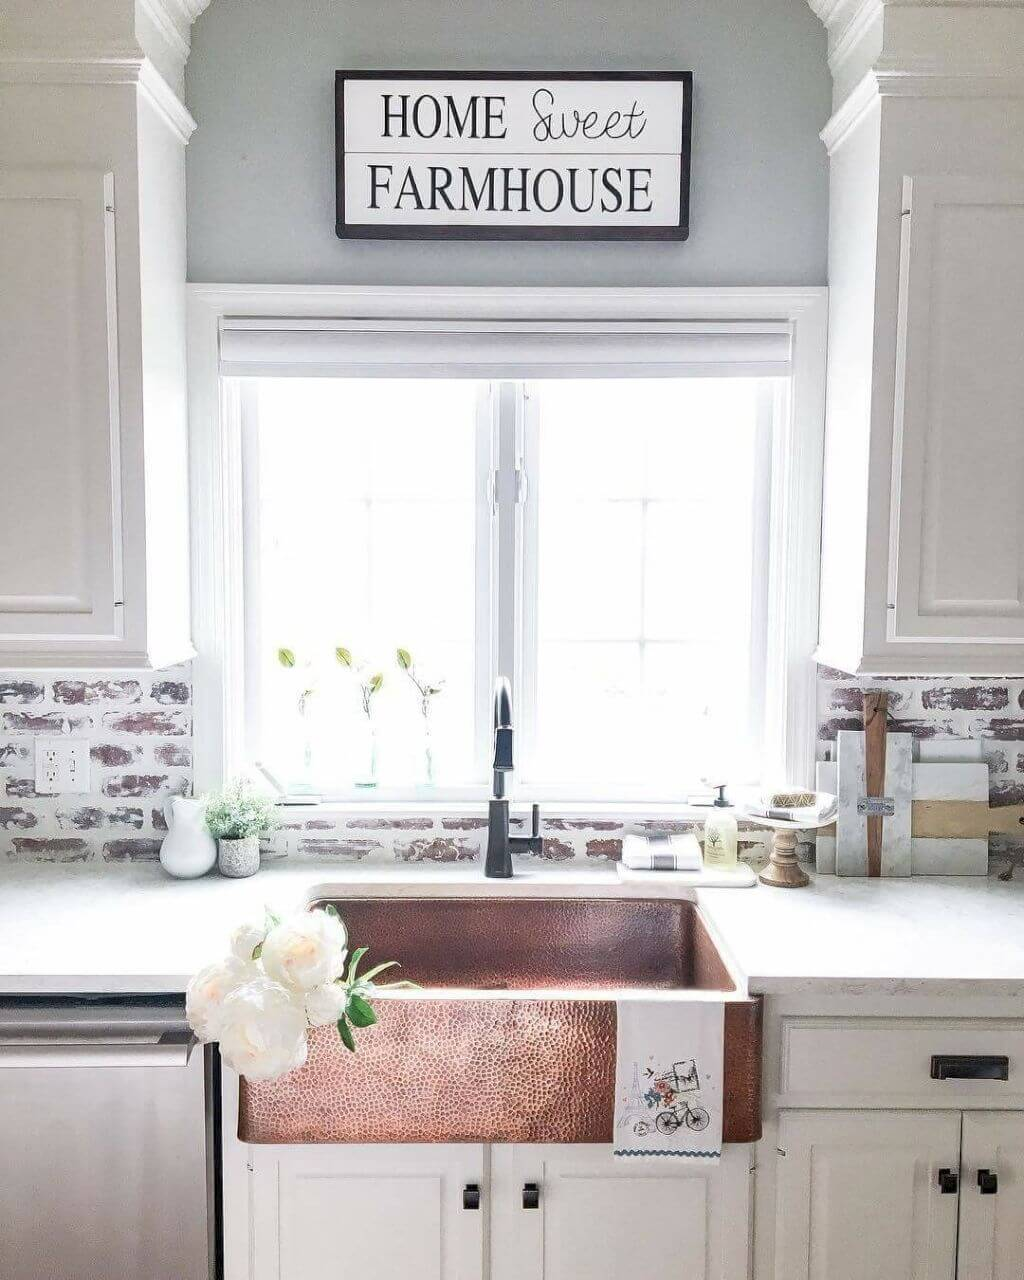 - 8 Best Farmhouse Kitchen Backsplash Ideas And Designs For 2020